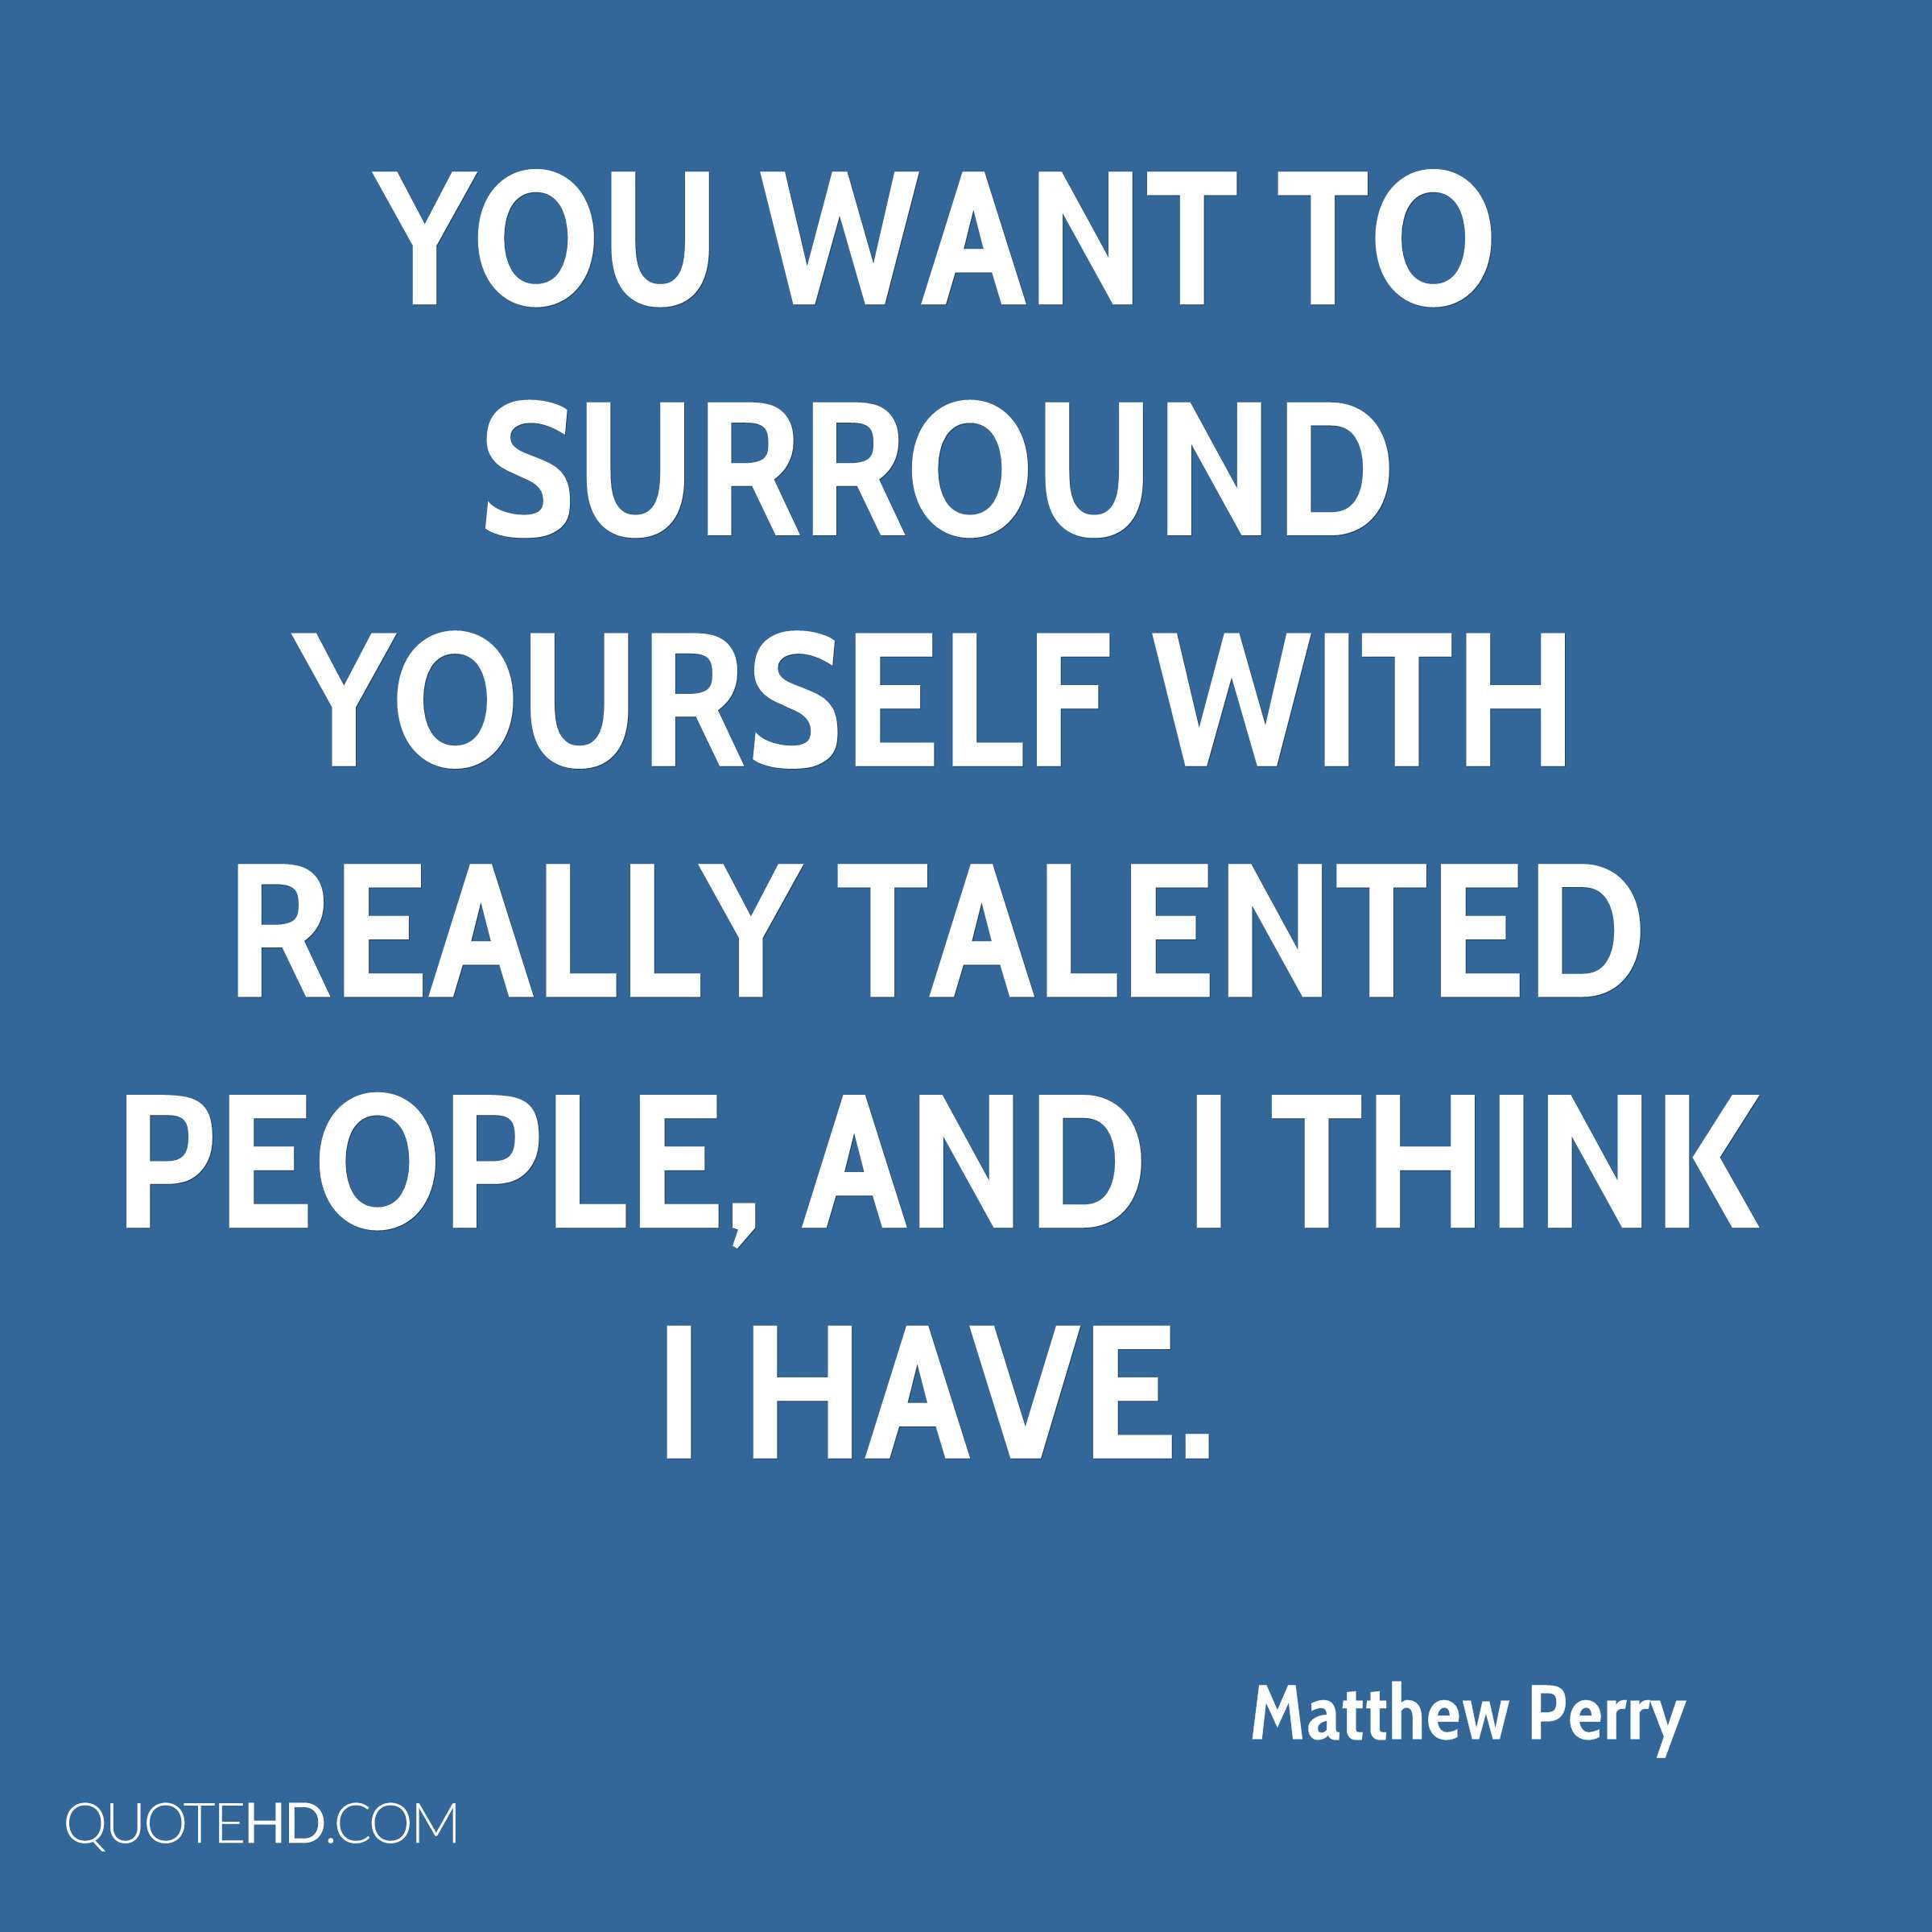 Matthew Perry Quotes Quotehd